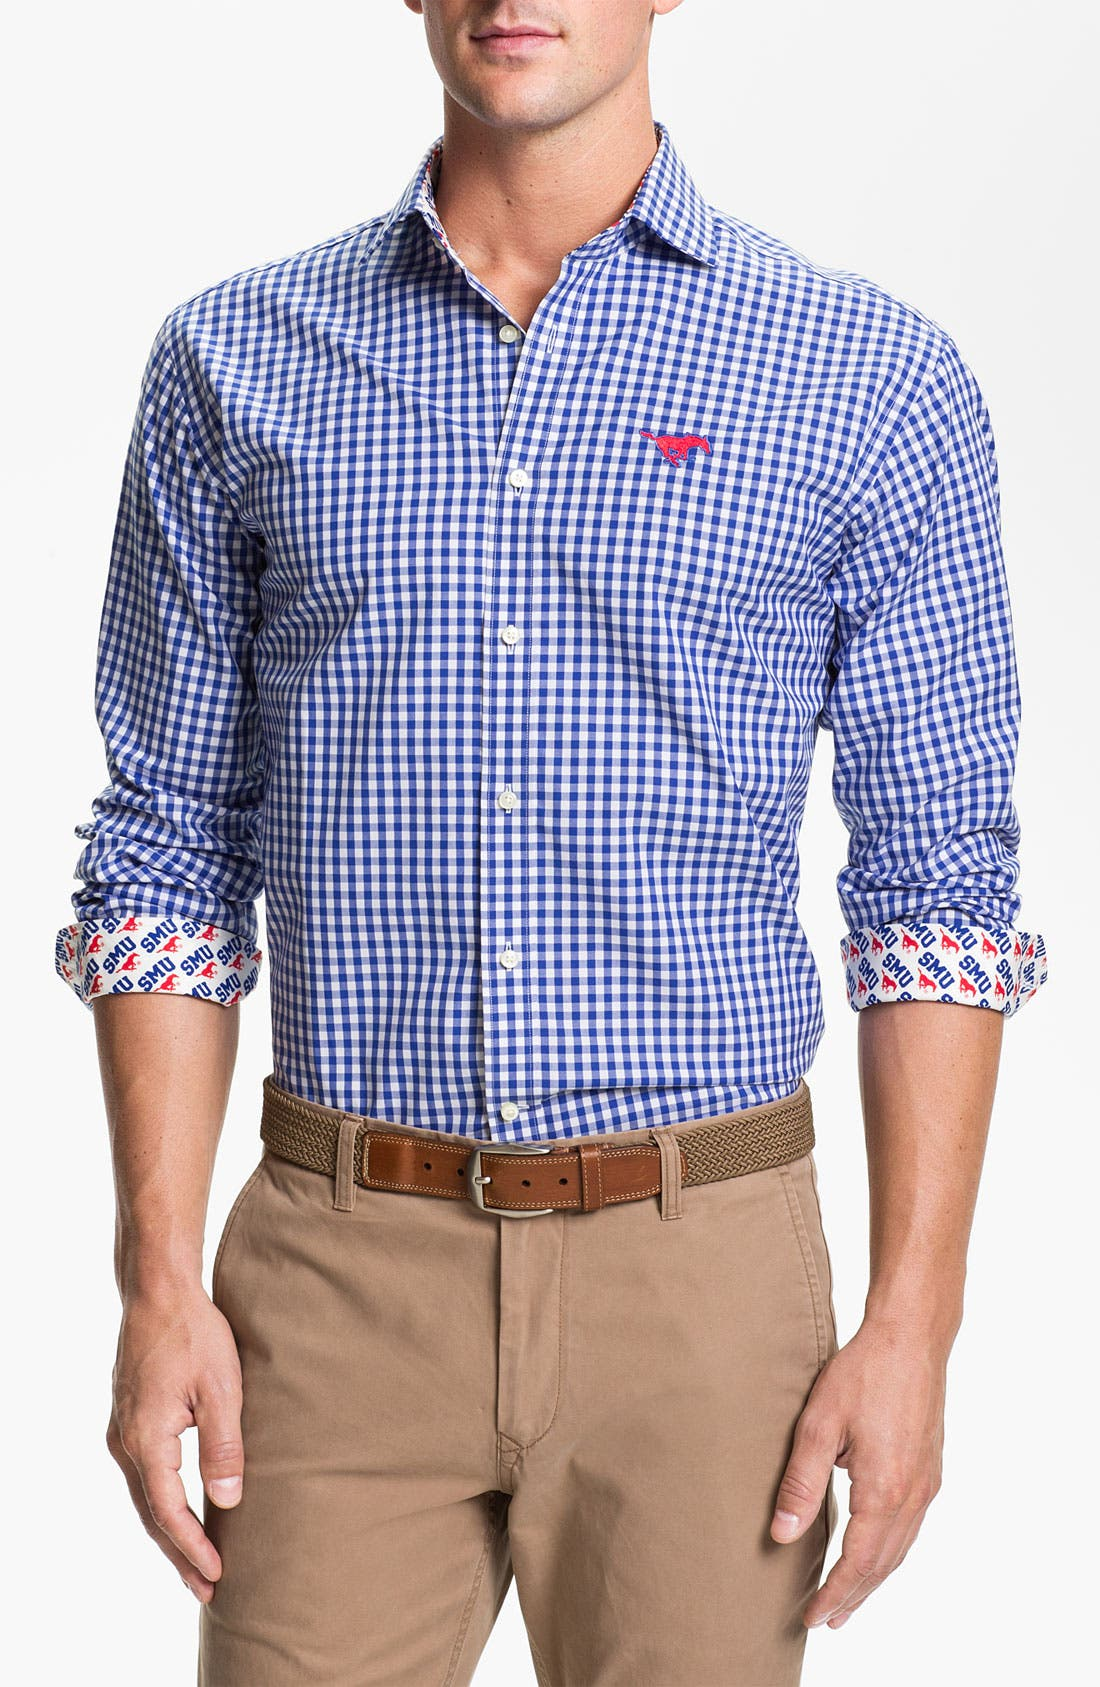 Alternate Image 1 Selected - Thomas Dean 'Southern Methodist University' Gingham Sport Shirt